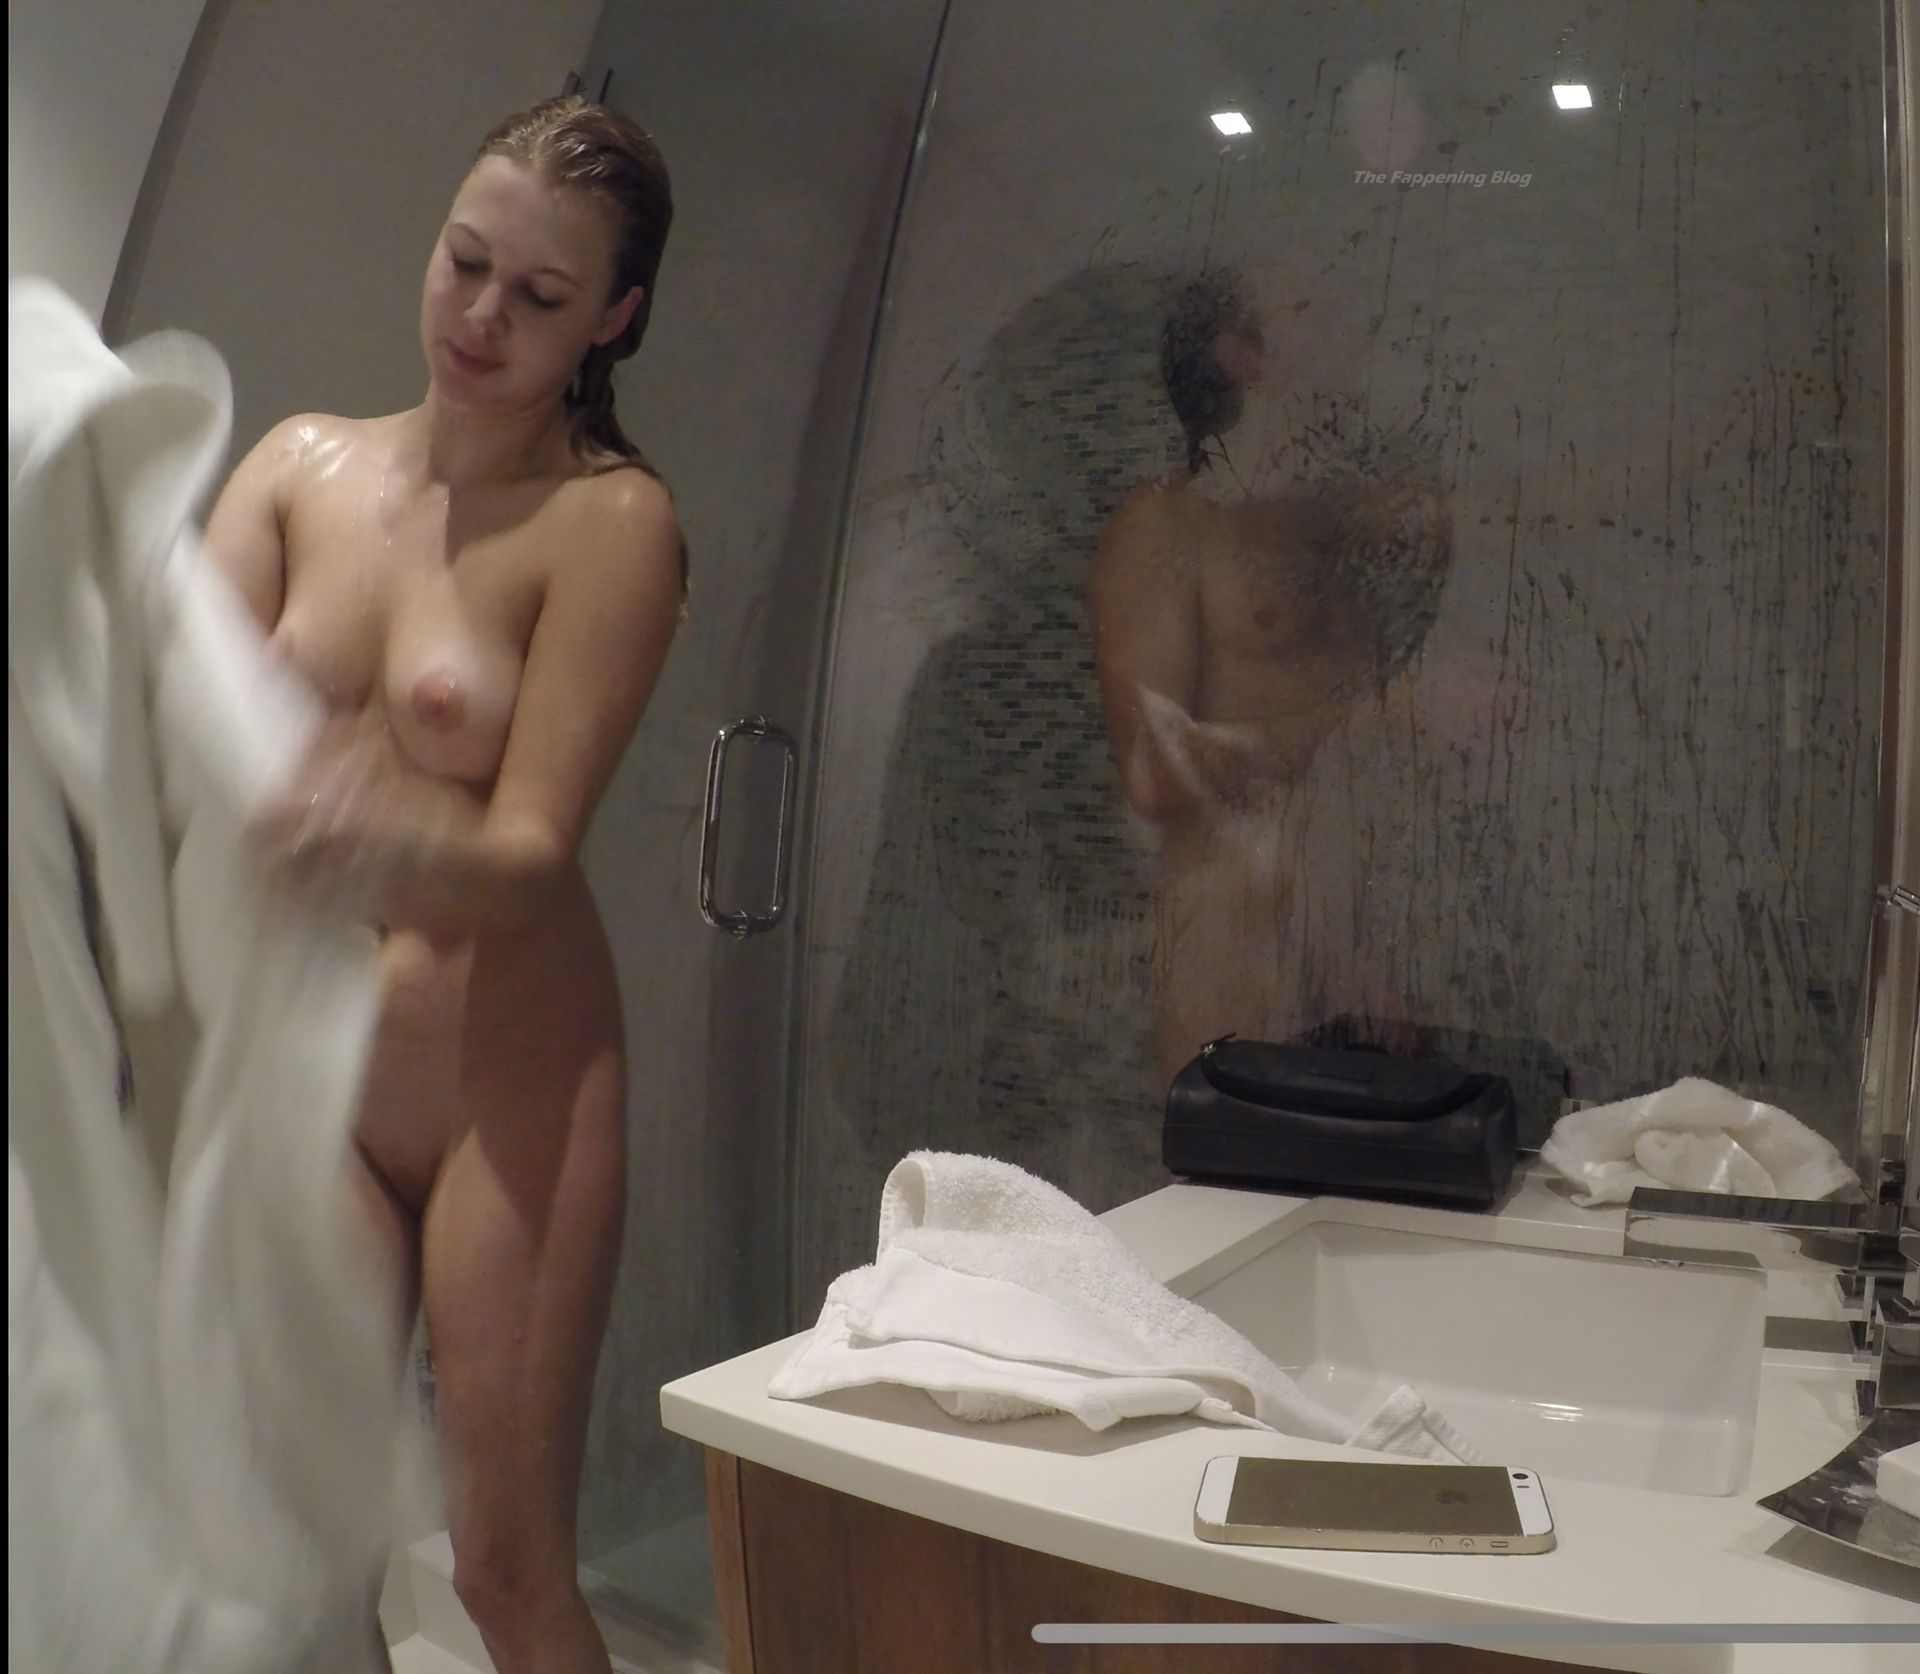 Casie Chegwidden Nude Leaked The Fappening Blog 16